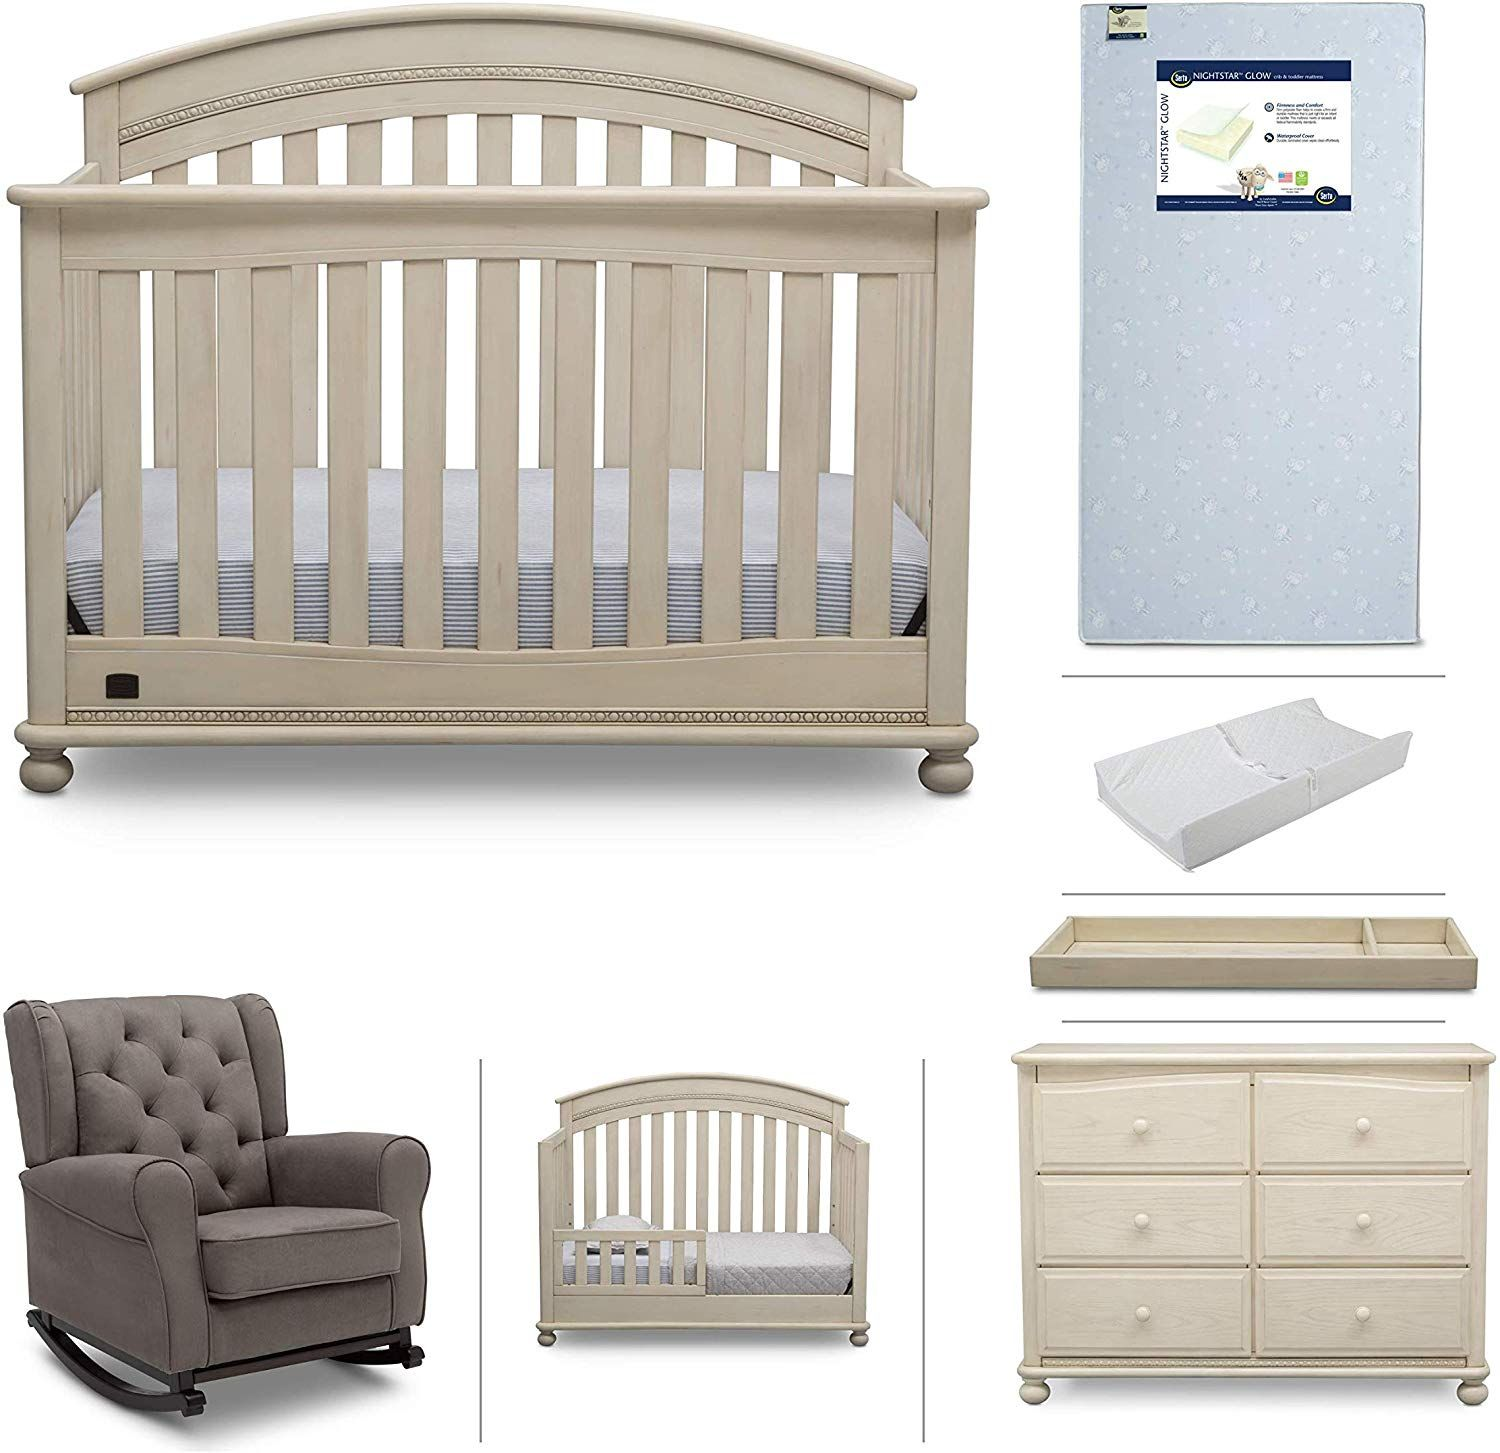 Hot New Baby Nursery Furniture Deals $1,799.99 Baby Furniture Set